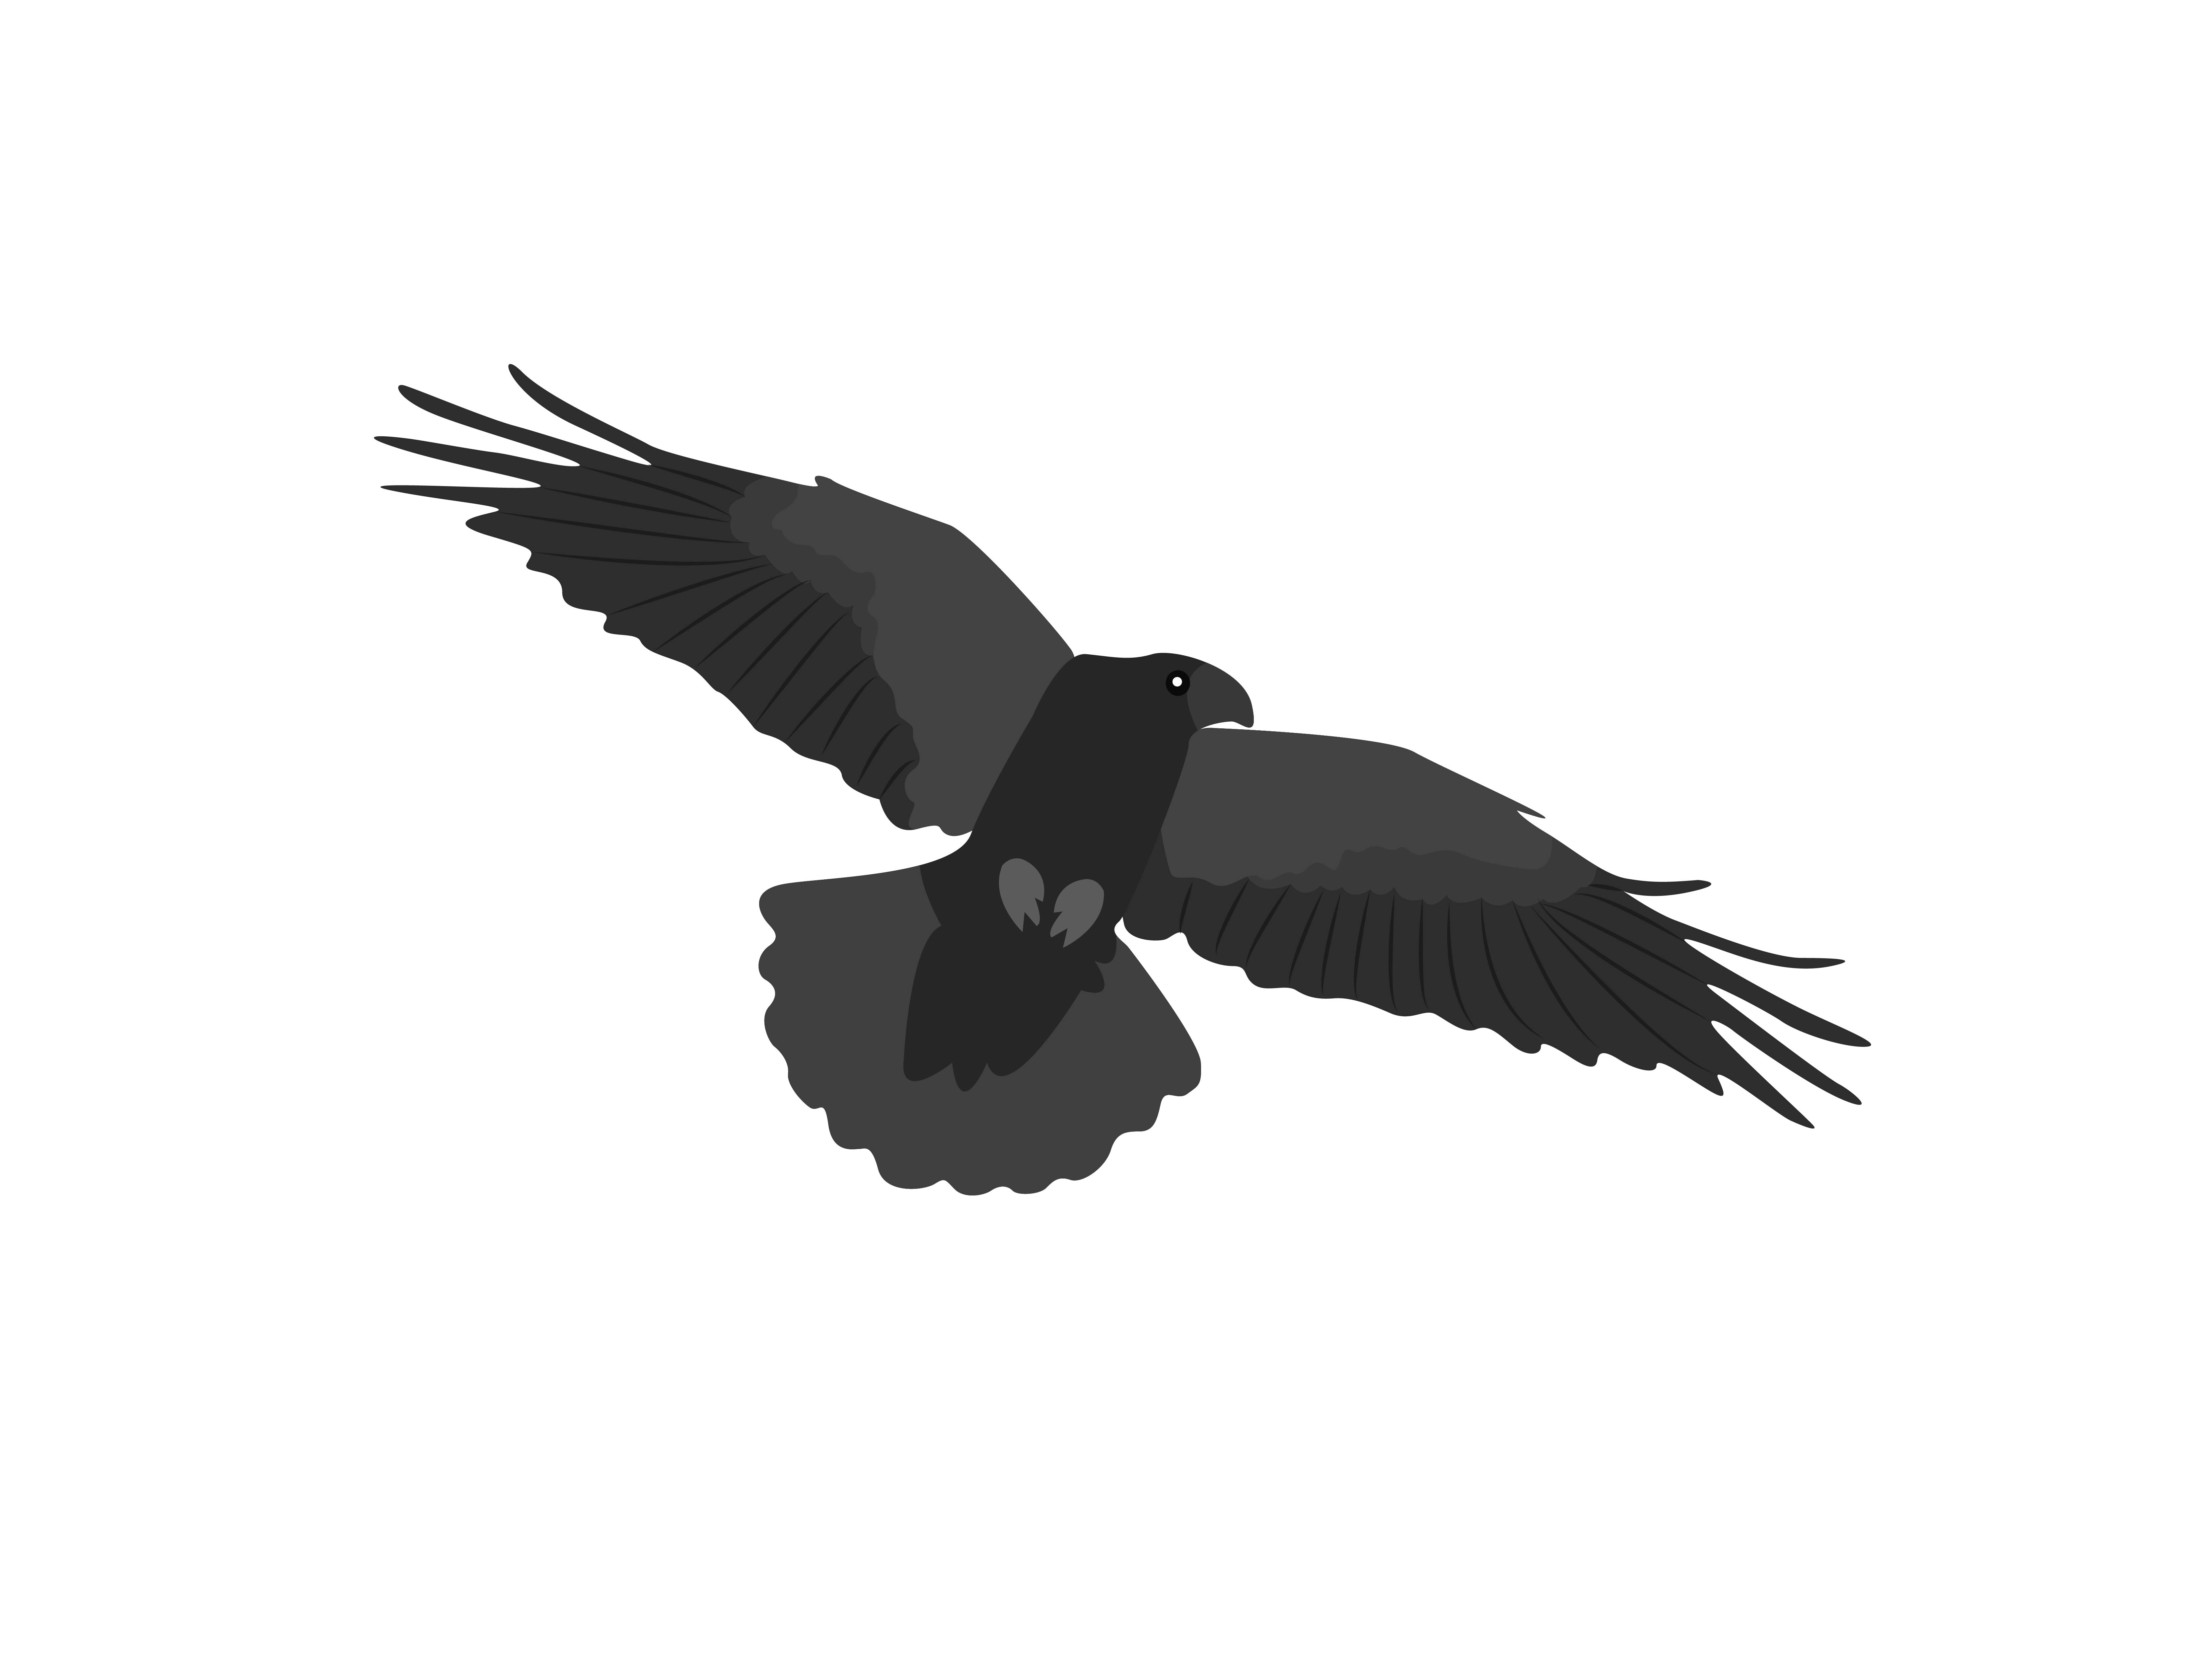 Download Free Flying Crows Expand Their Wings Animal Graphic By Archshape for Cricut Explore, Silhouette and other cutting machines.